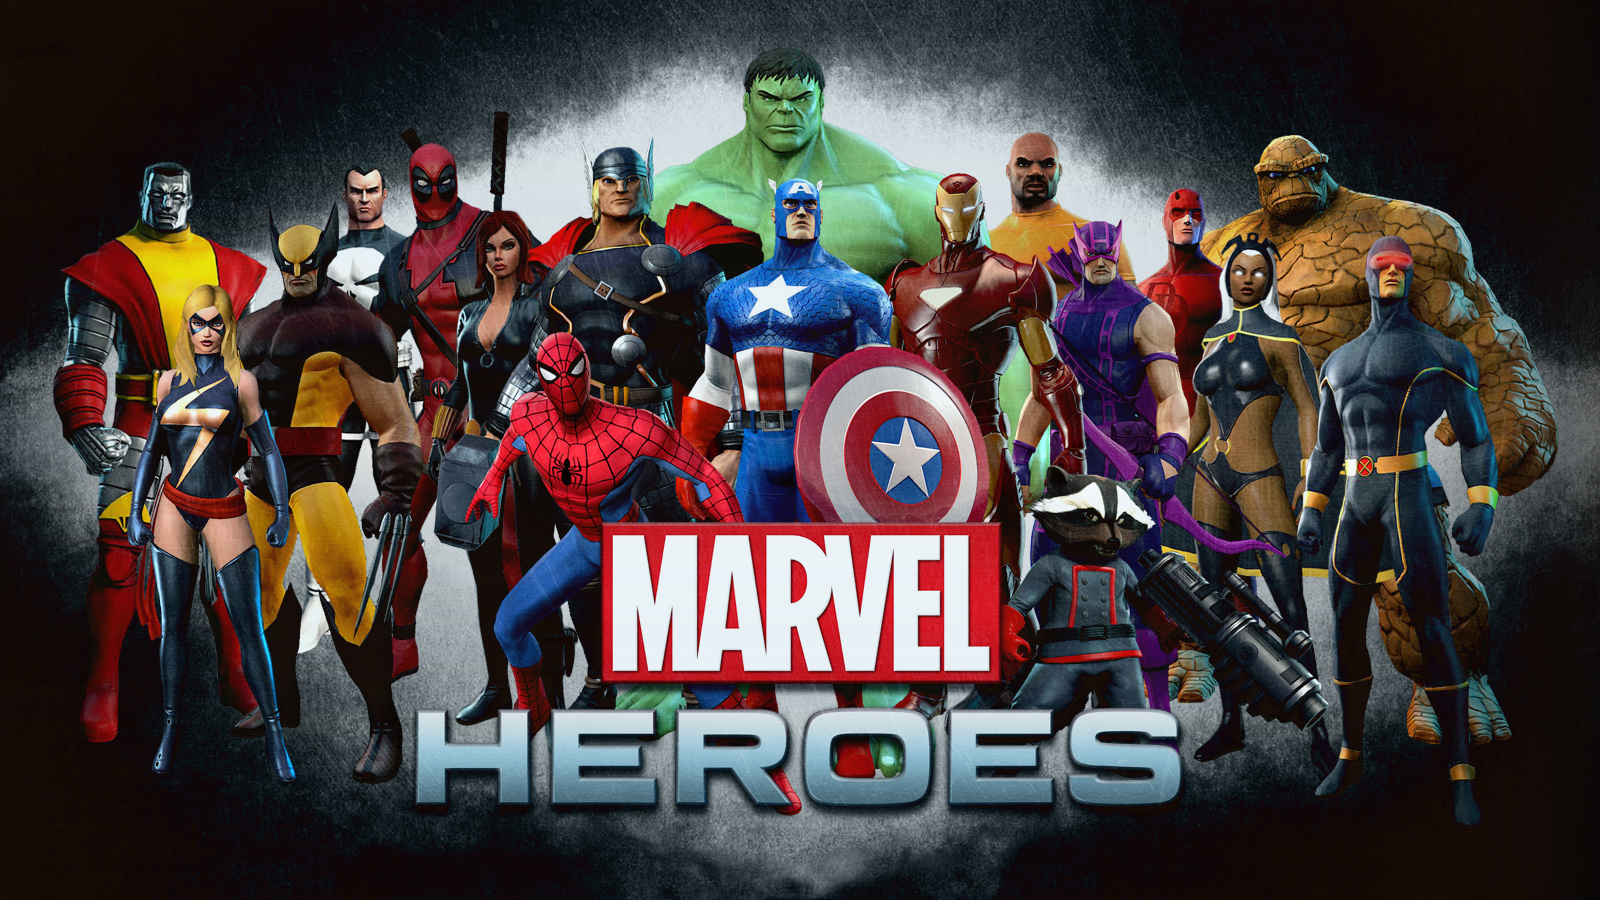 Marvel Heroes Computer Wallpapers Desktop Backgrounds 1600x900 ID 1600x900